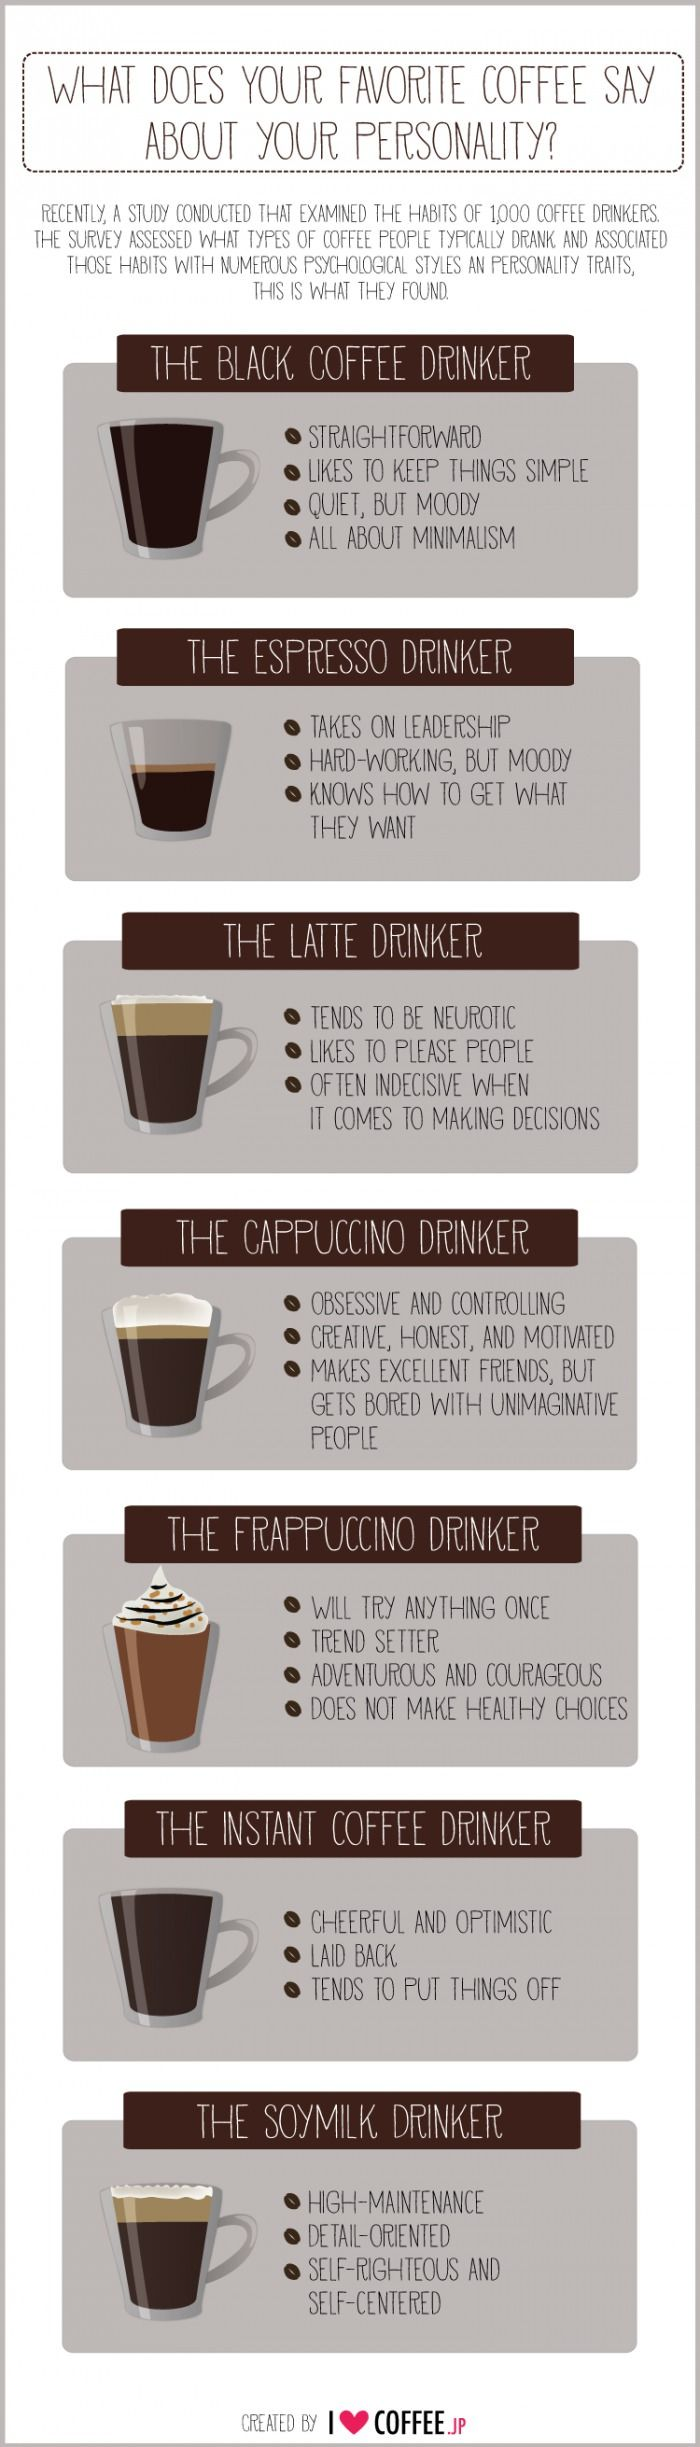 Any coffee addicts out there?